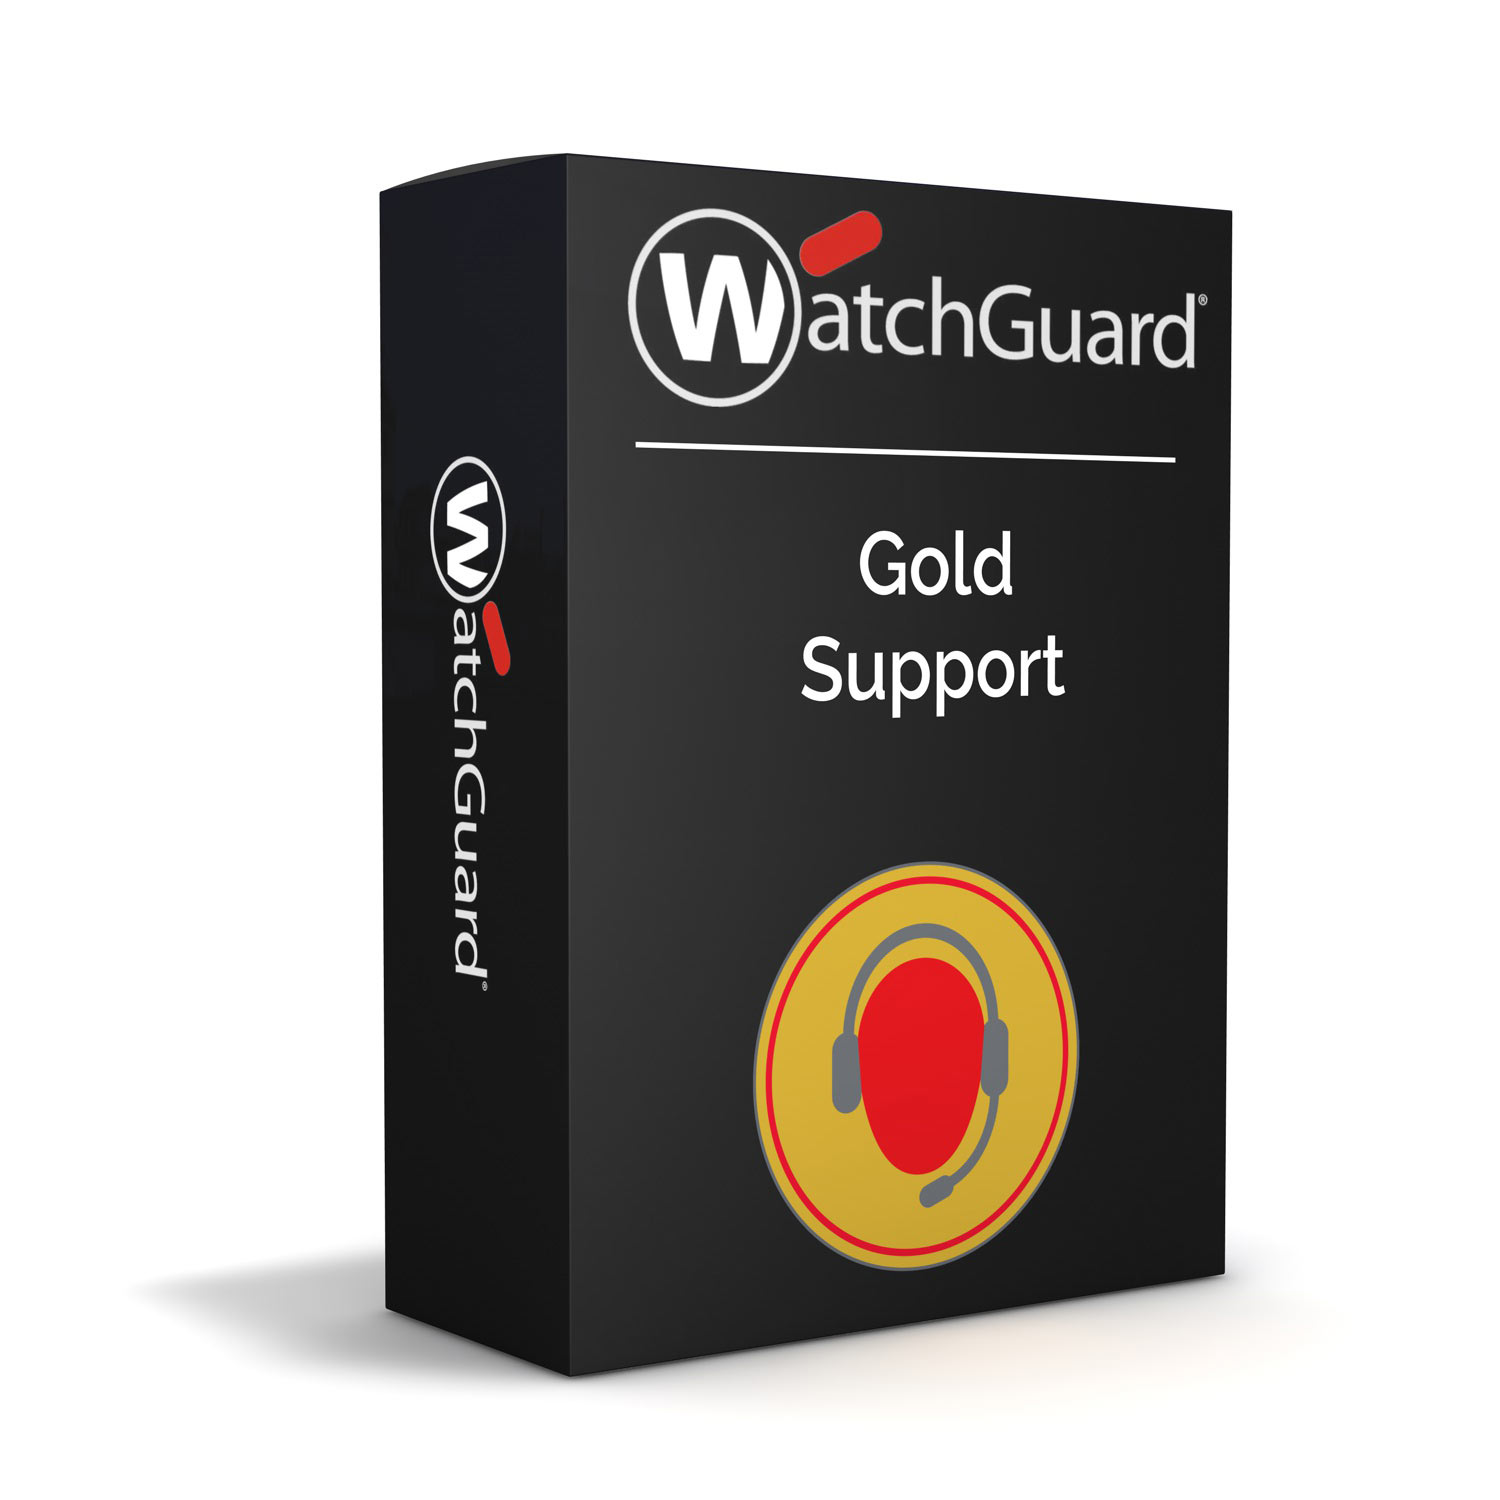 WatchGuard Gold Support Renewal/Upgrade 3-yr for Firebox T70